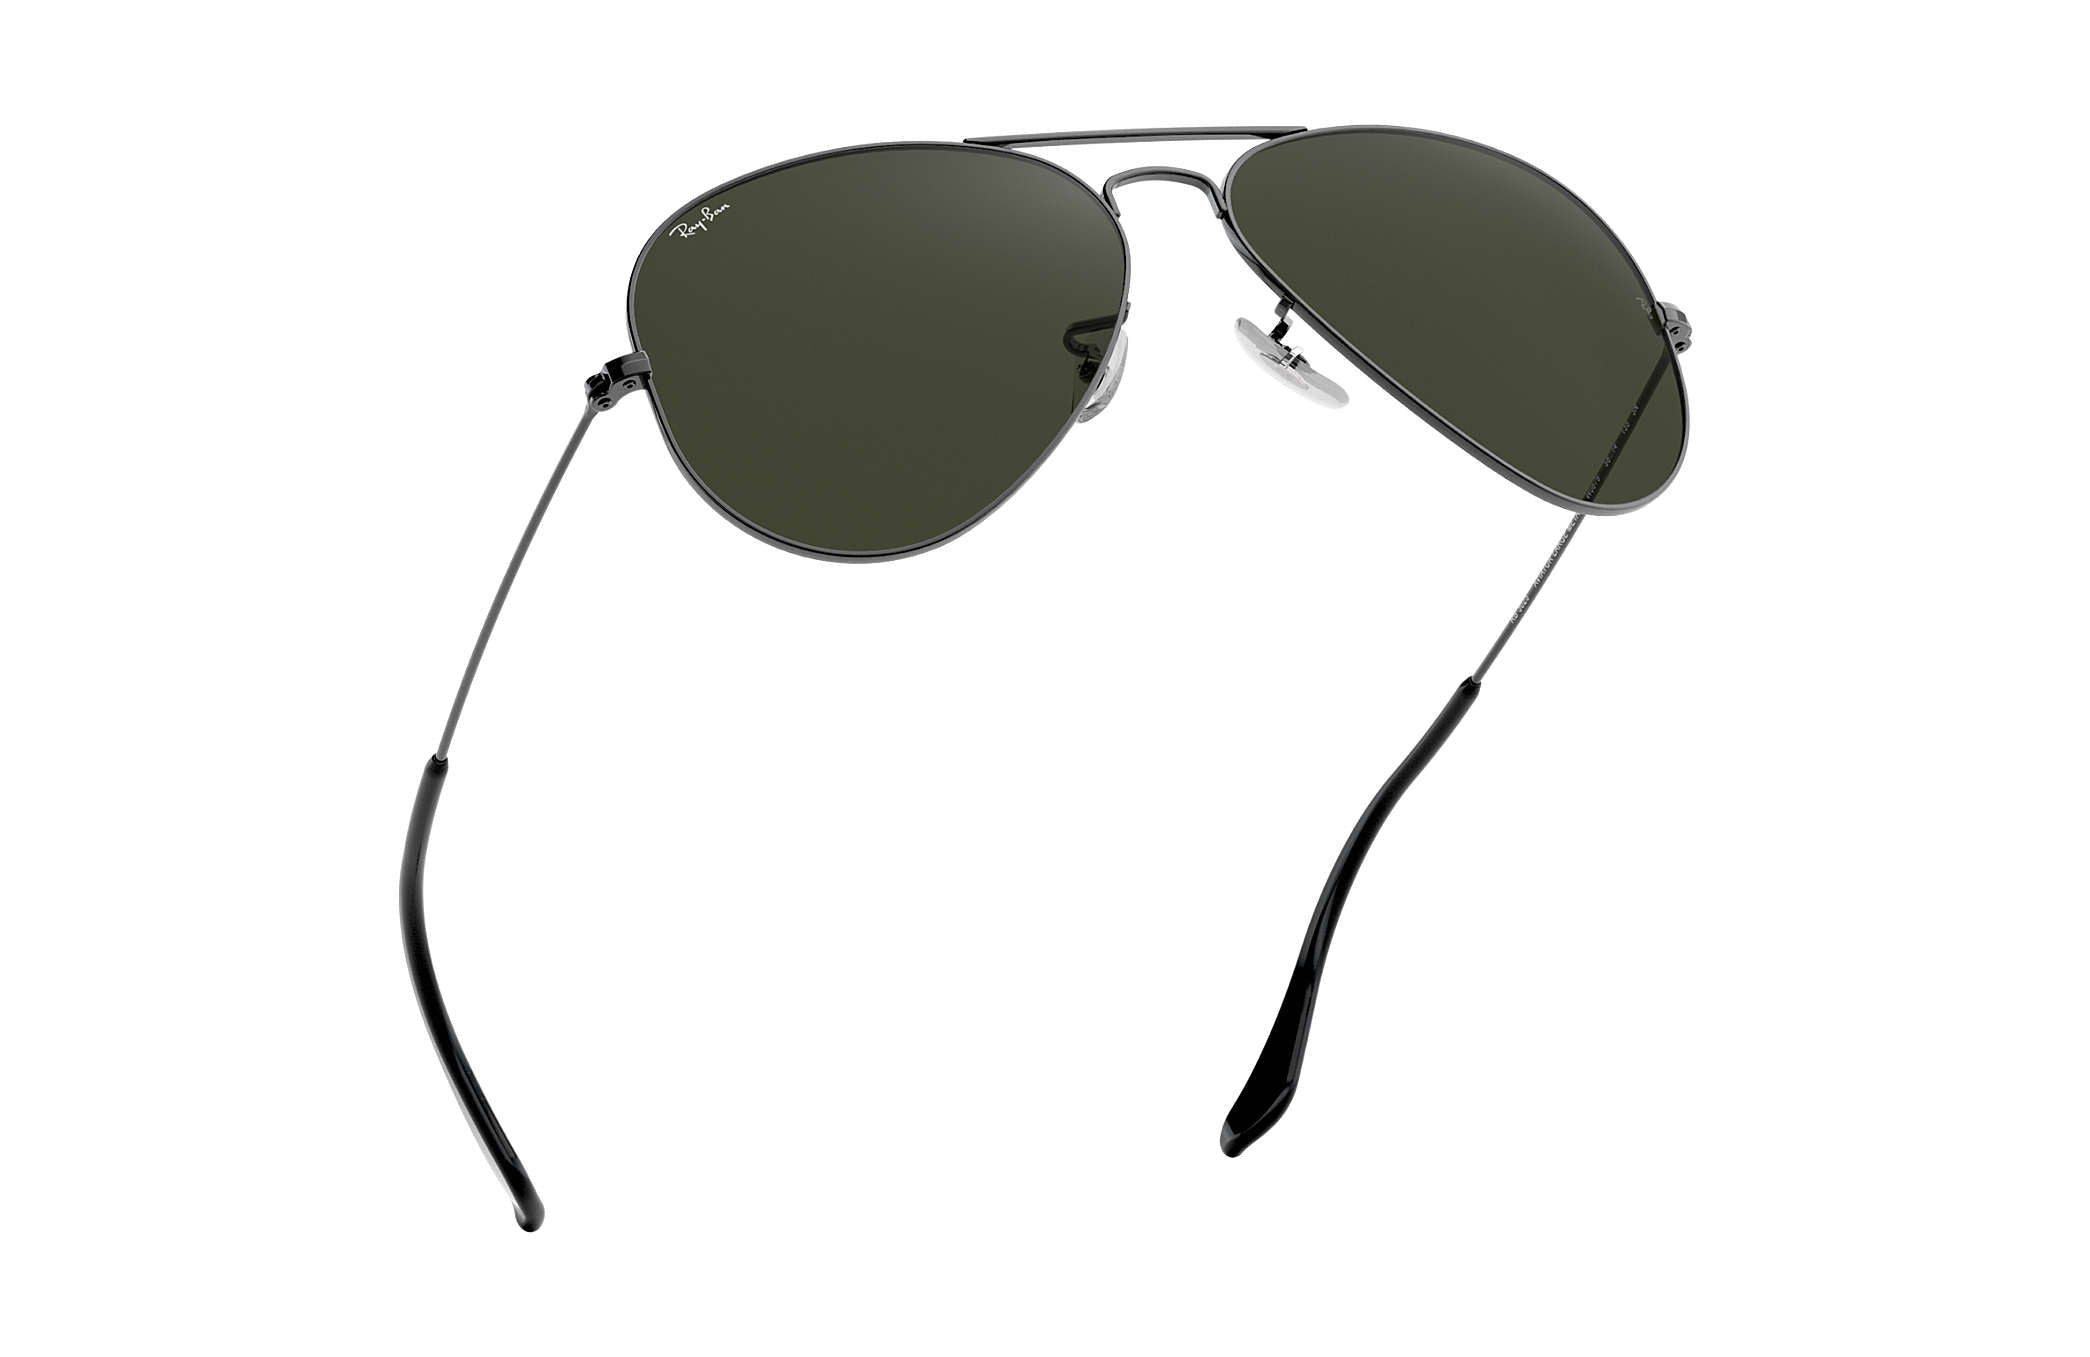 RAY-BAN 0RB3025 - LARGE METAL AVIATOR SUNGLASSES - OPTICIWEAR.COM